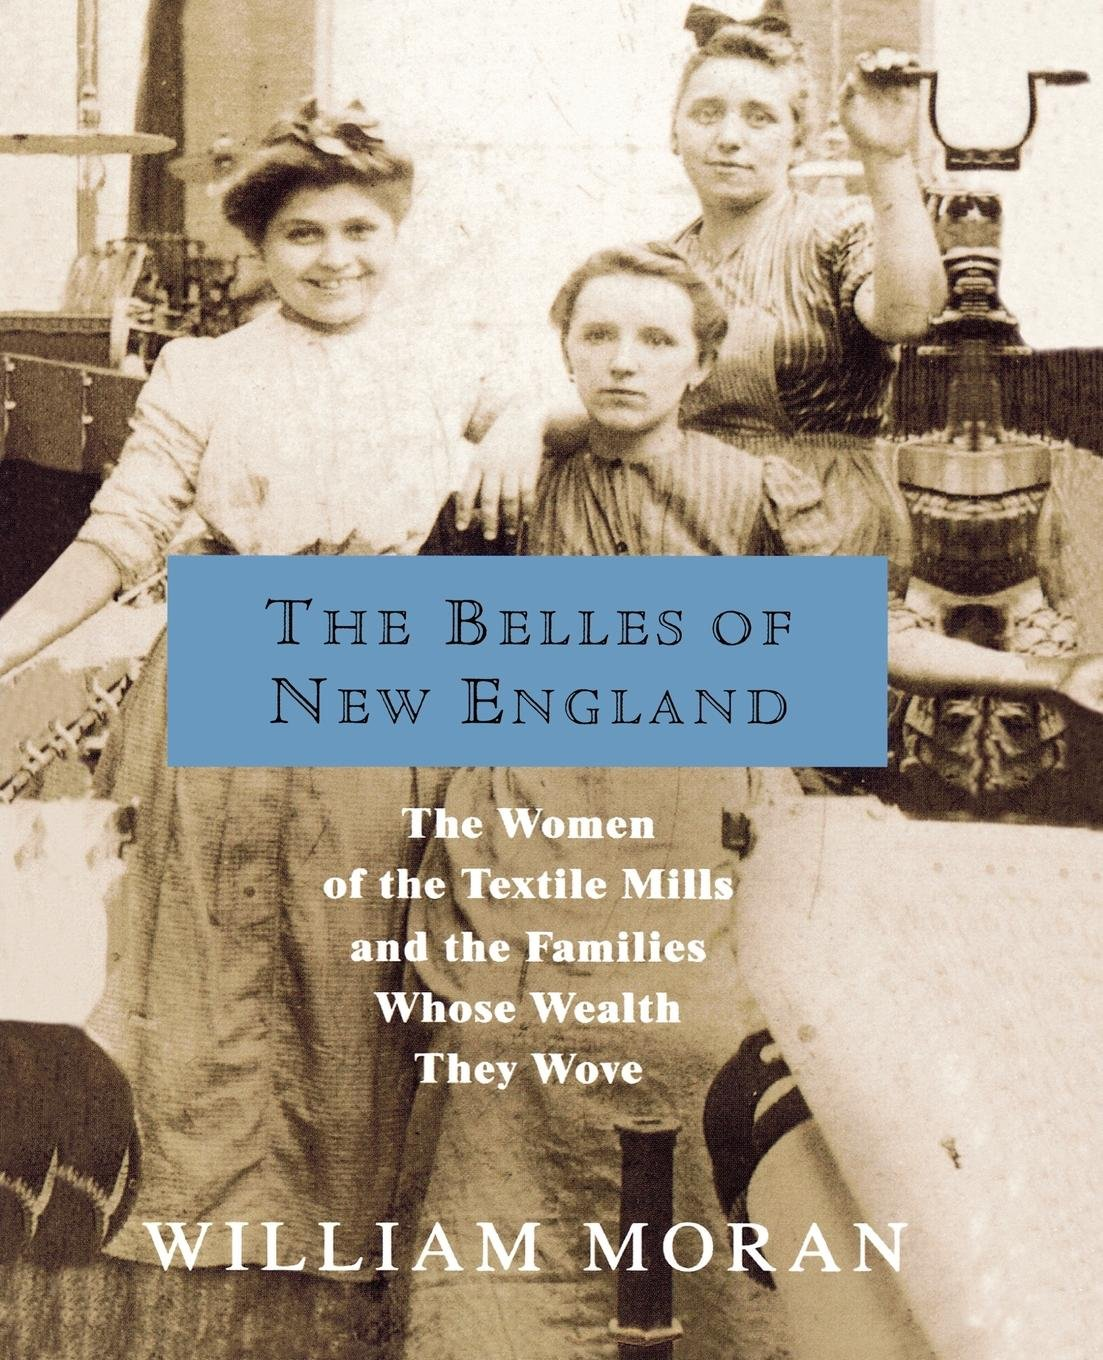 The Belles of New England: The Women of the Textile Mills and the Families Whose Wealth They Wove ebook